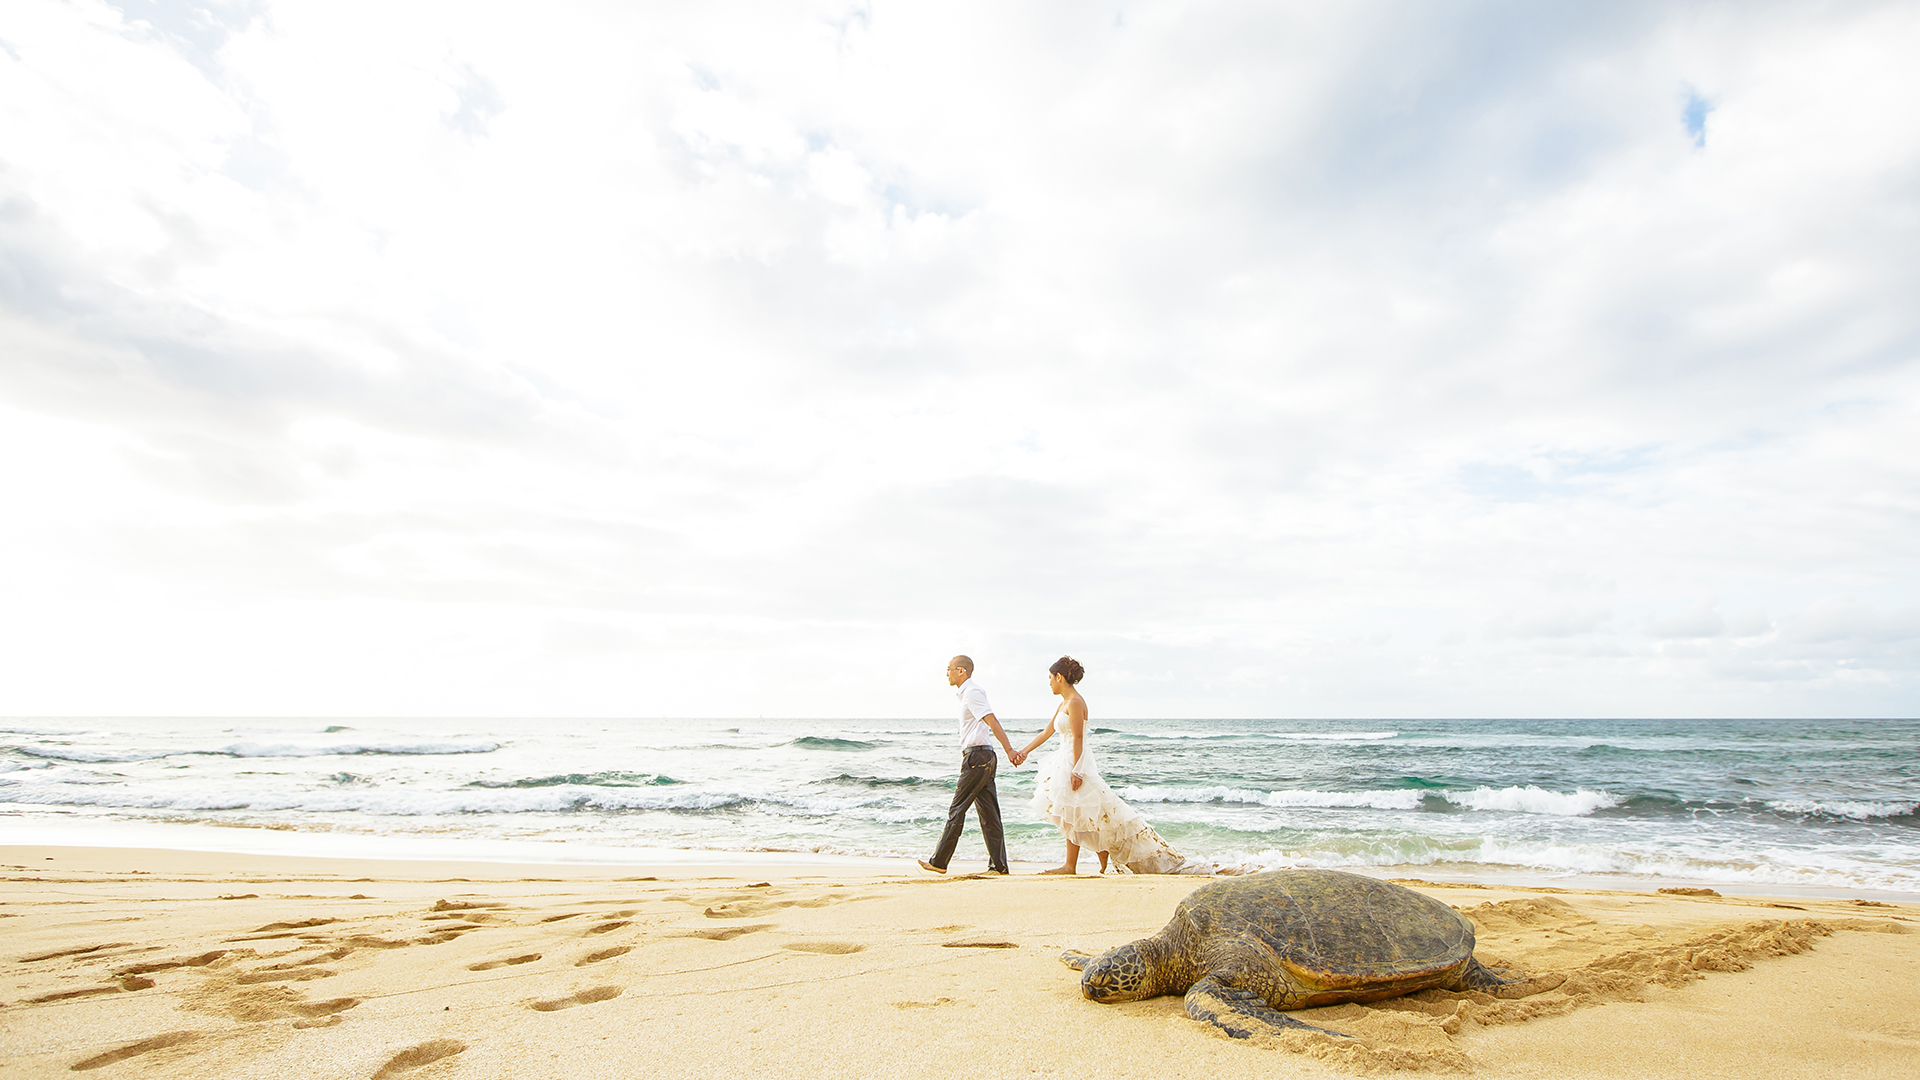 A nice stroll next to the resting turtle on the North Shore of Hawaii.